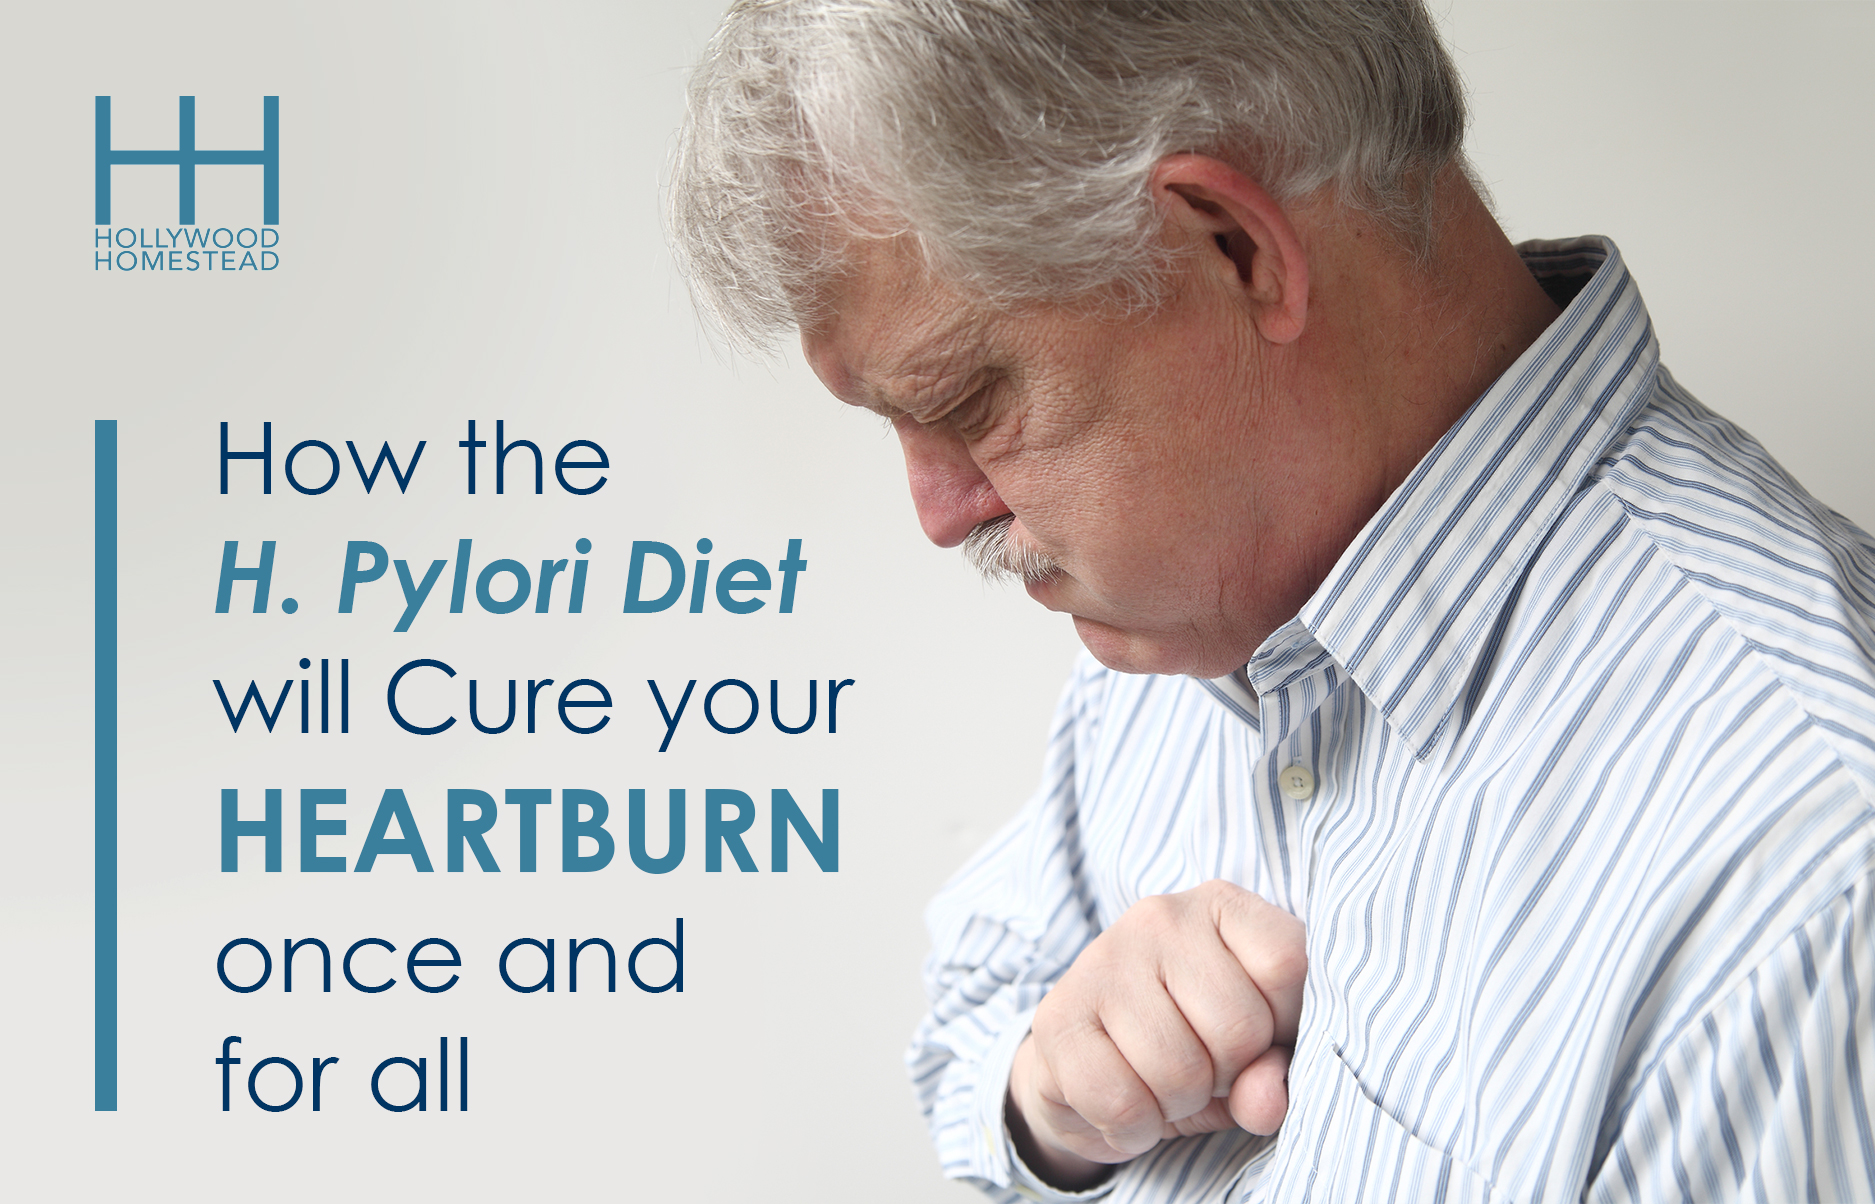 The H Pylori Diet that Will Cure Your Heartburn ce and for All